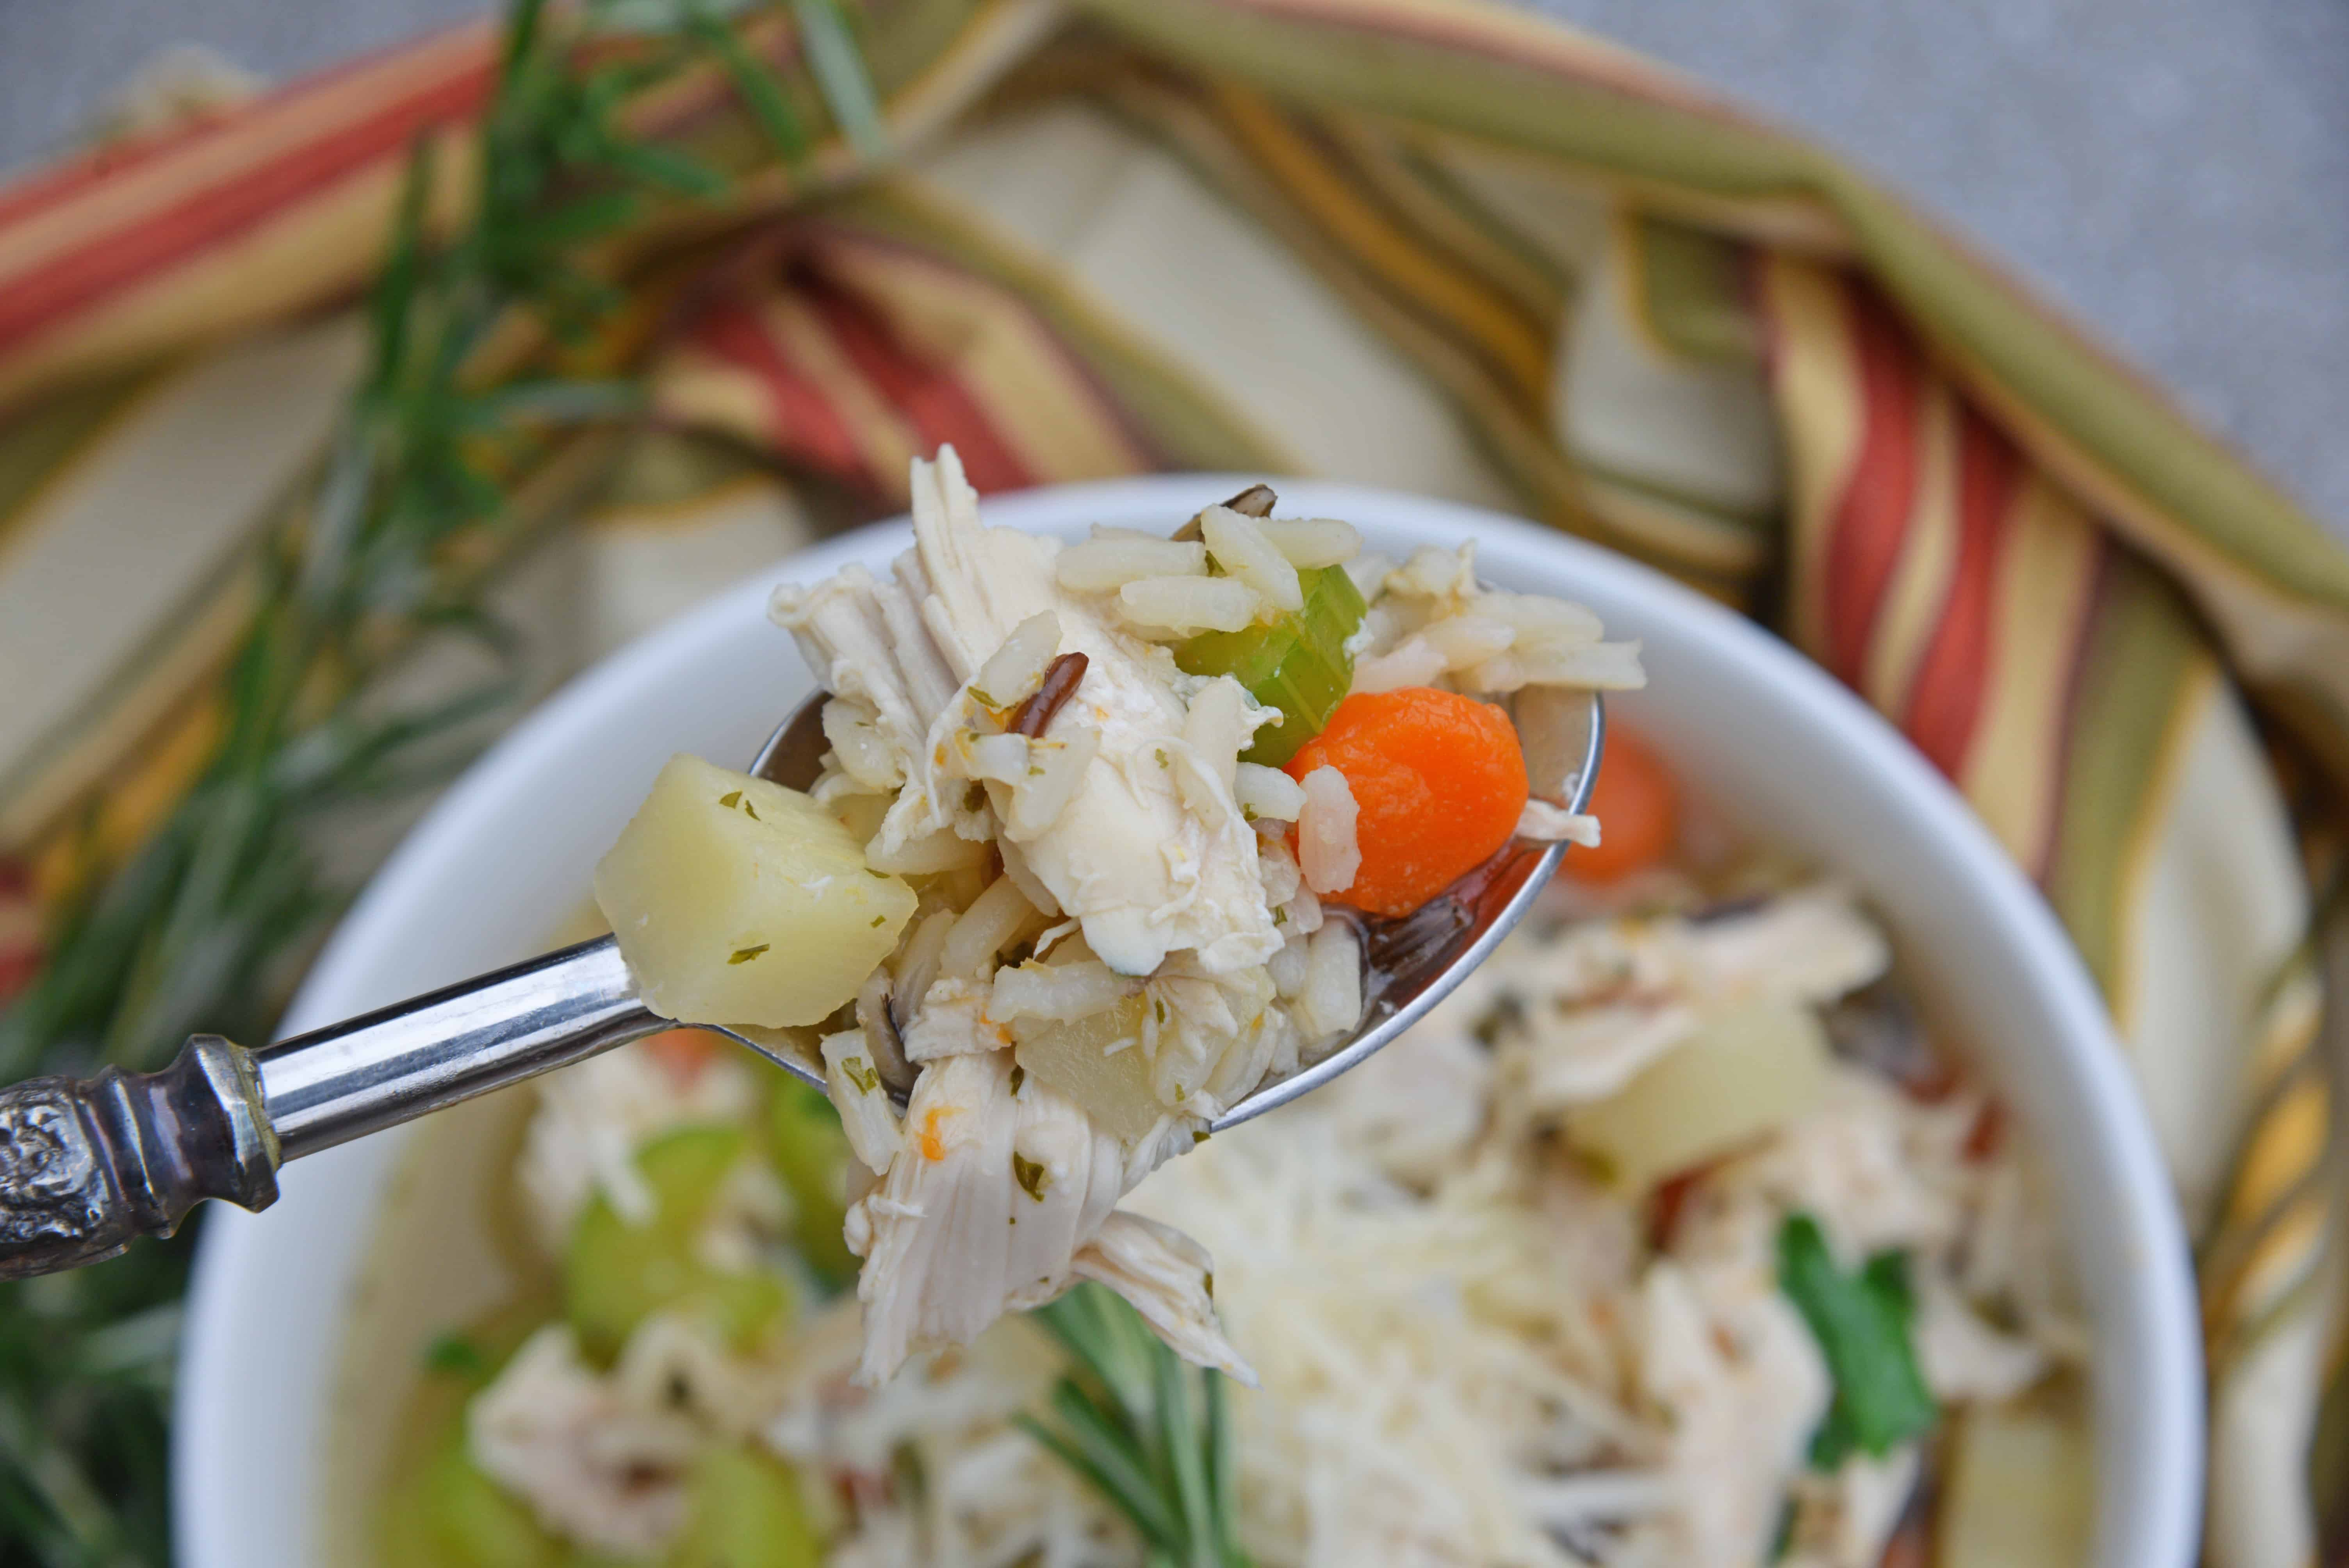 This 20-Minute Wild Rice Chicken Soup is an incredibly easy but flavorful 20 minute meal made with two kitchen hacks that will make your life so much easier! It'll become a winter soup staple in your home! #chickensoup #chickenwildricesoup www.savoryexperiments.com